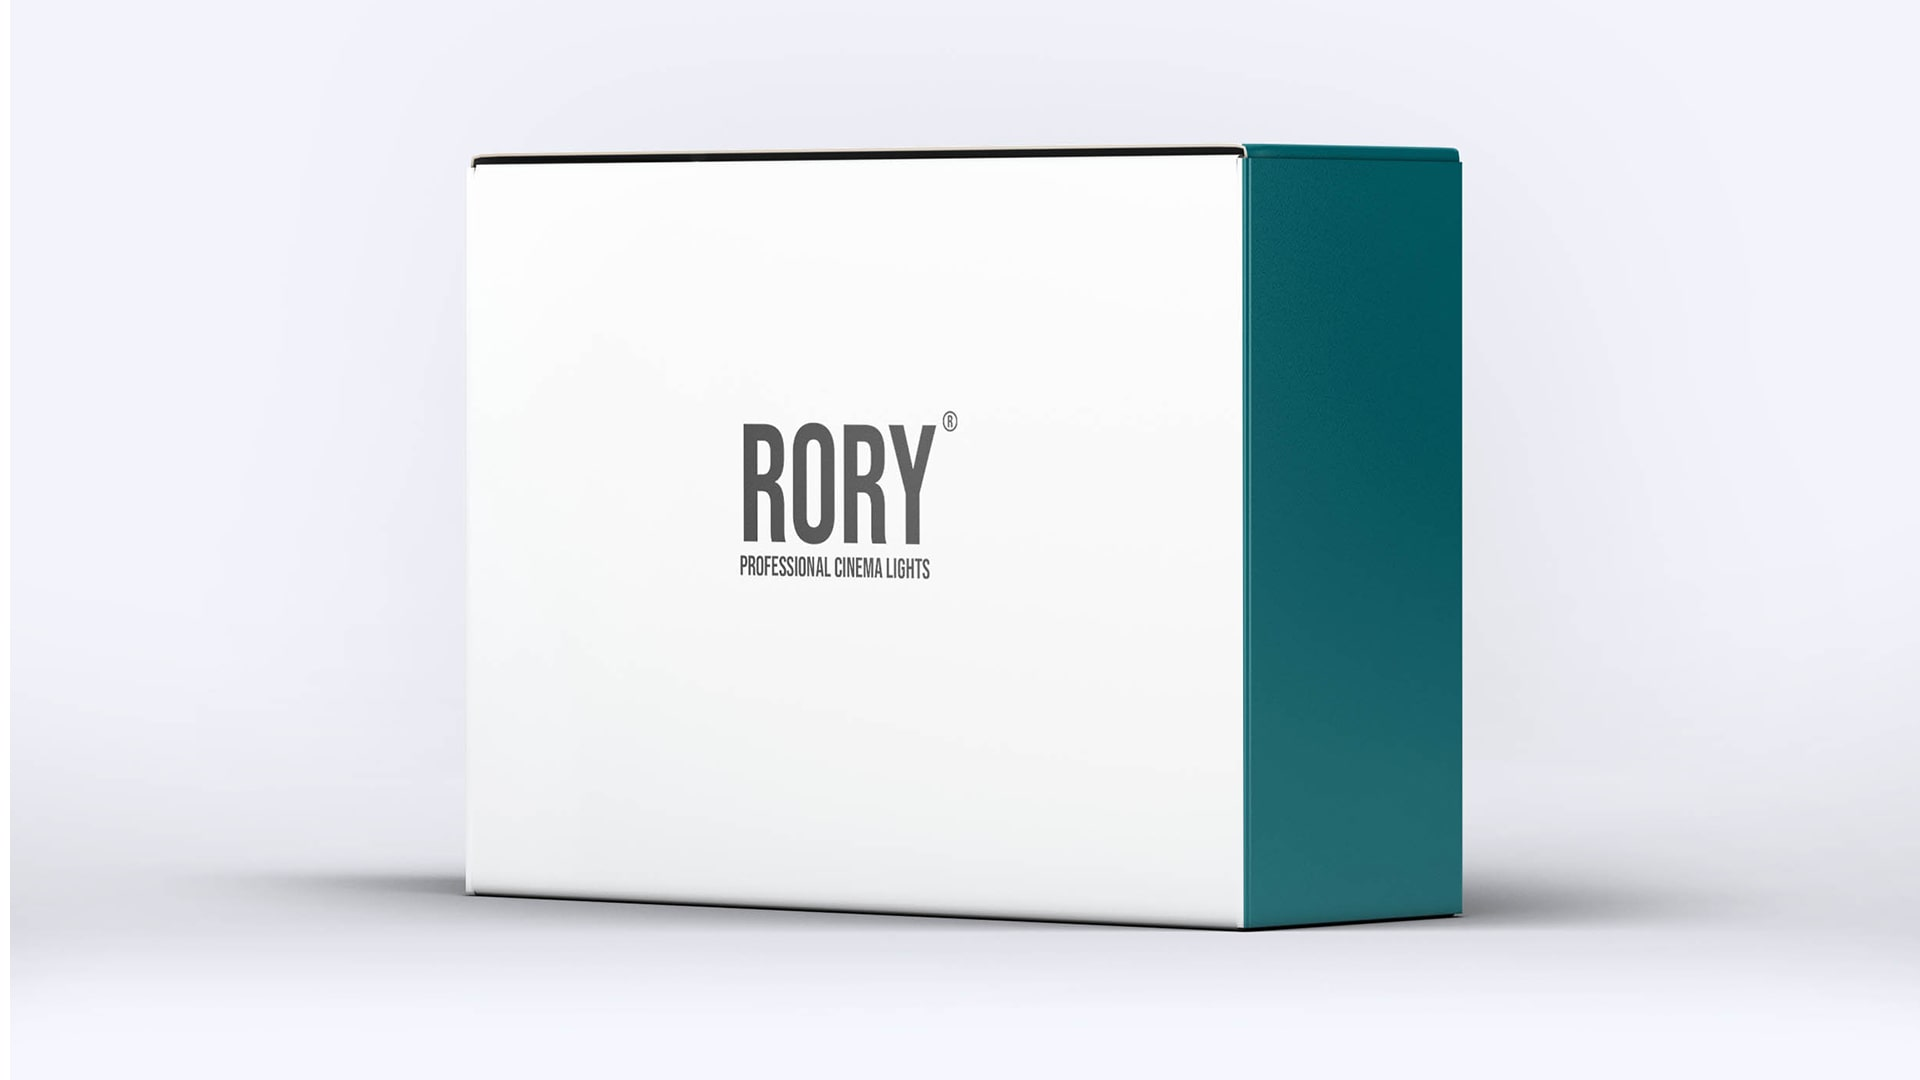 RORY Original Cinema Light